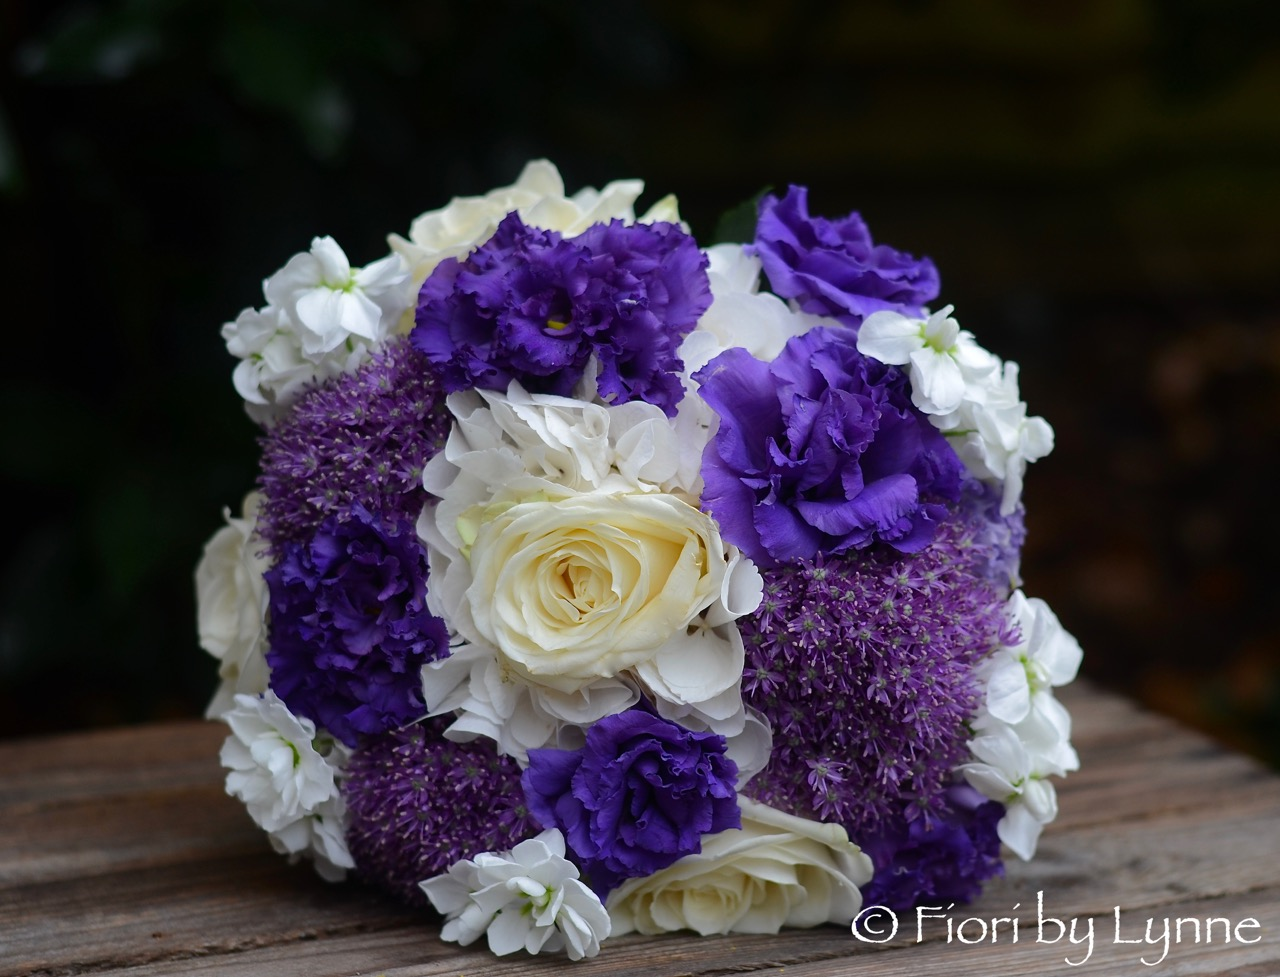 bouquet-purplewhite-rose-hydrangea-stocklisianthus-allium.jpg